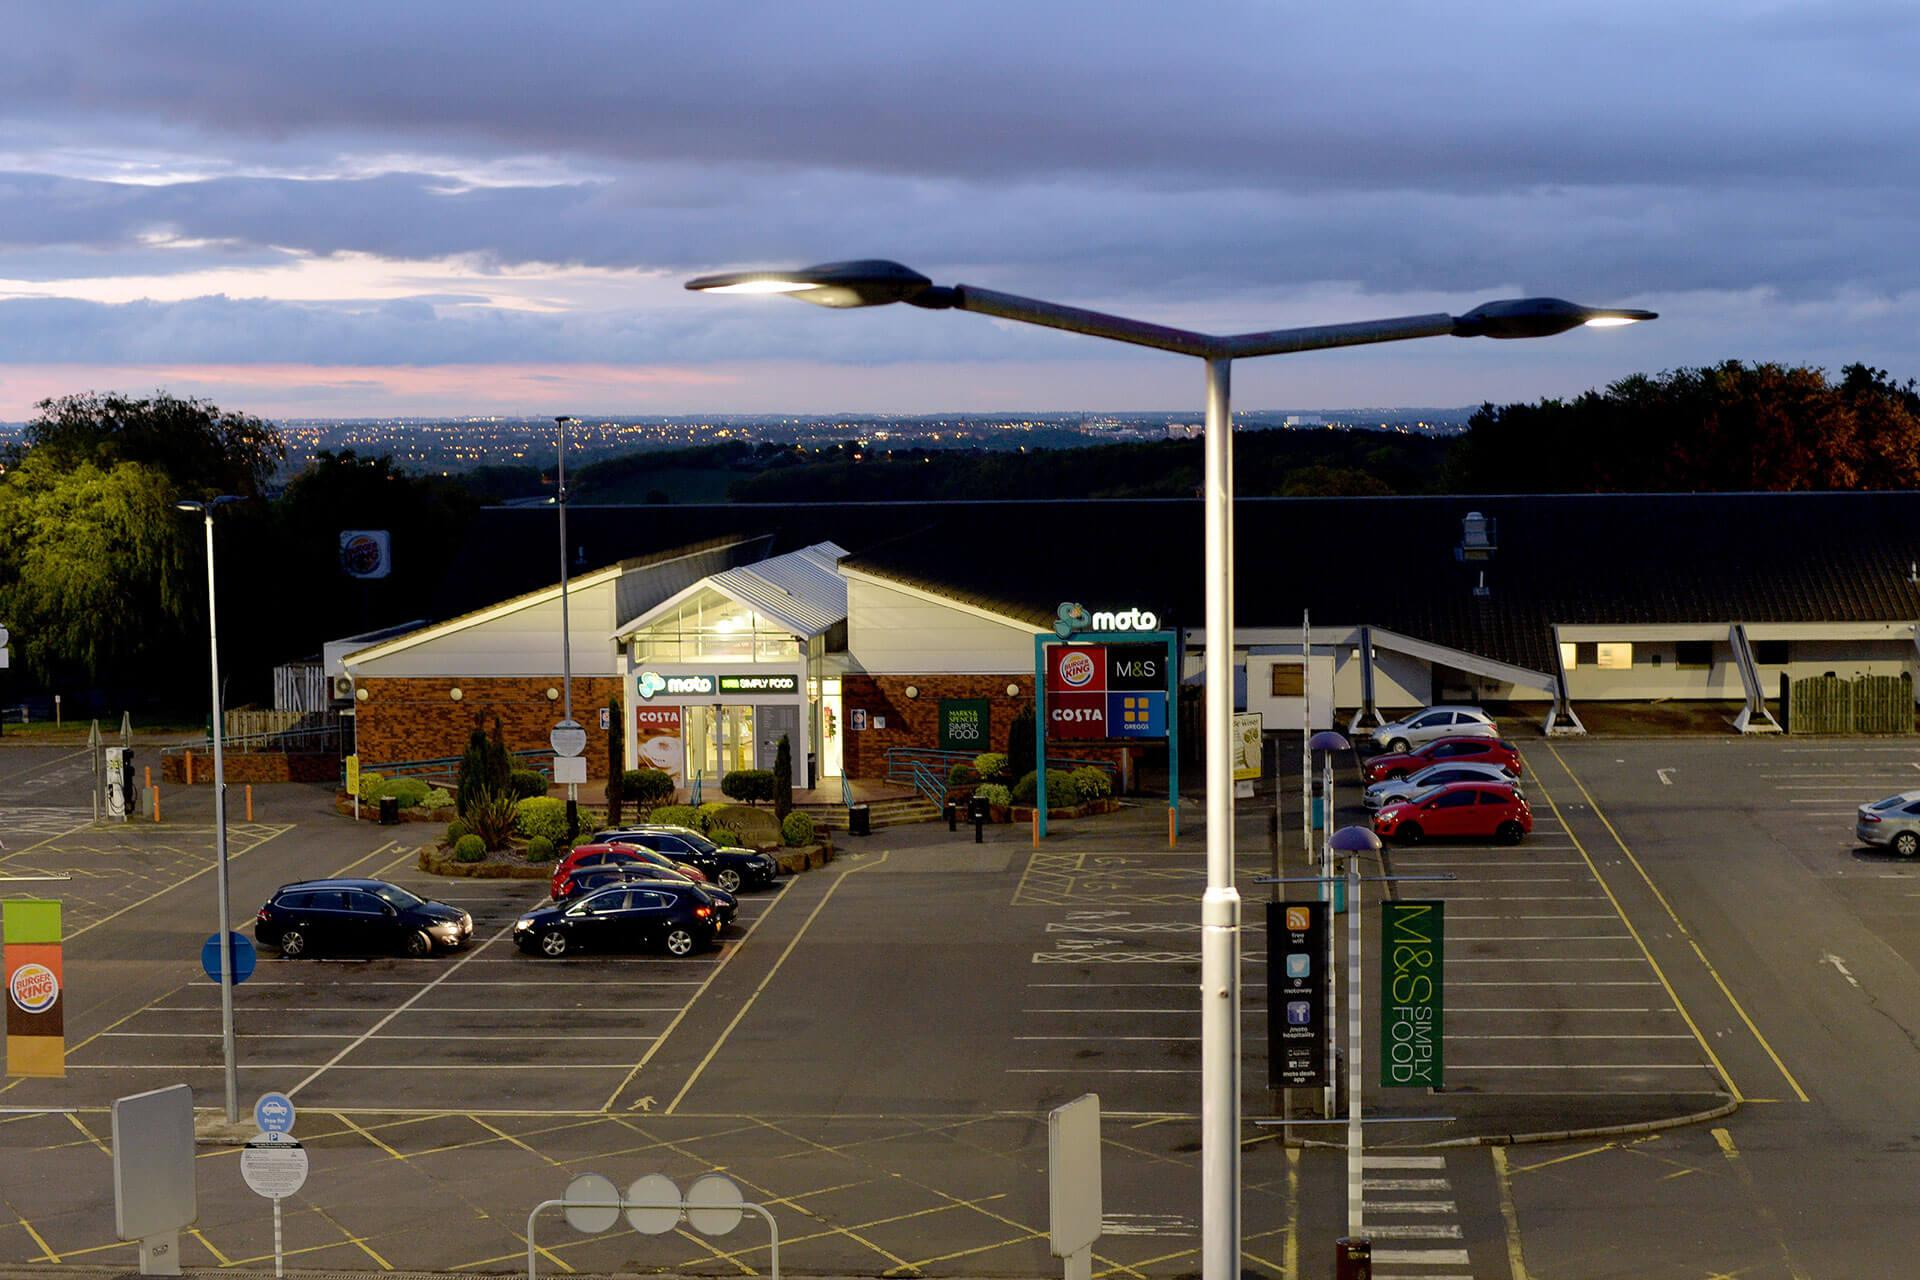 Energy-efficient Ampera luminaires provide a viable return on investment for this busy service station